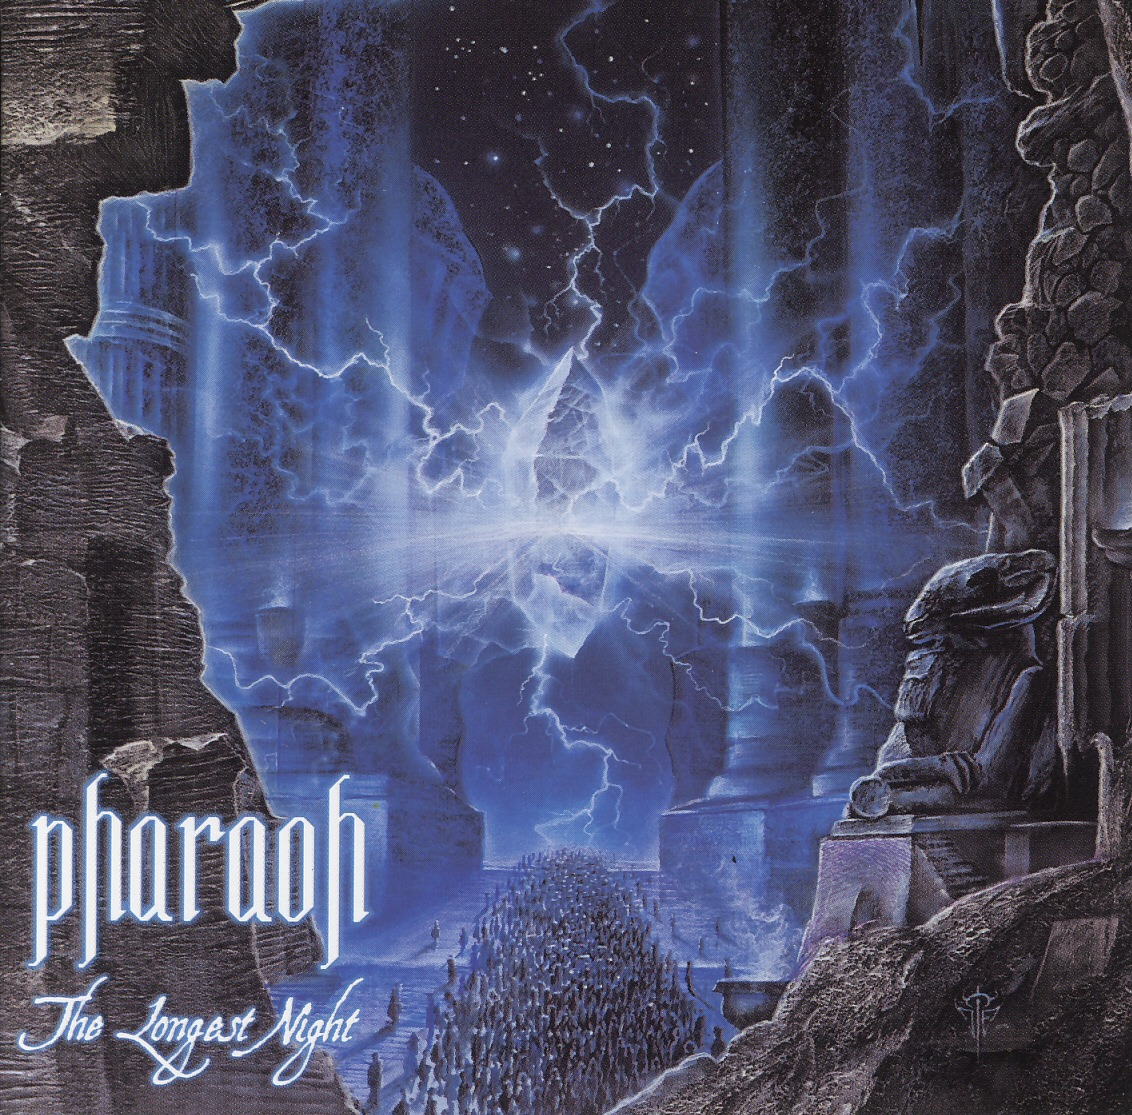 PHARAOH (US) / The Longest Night